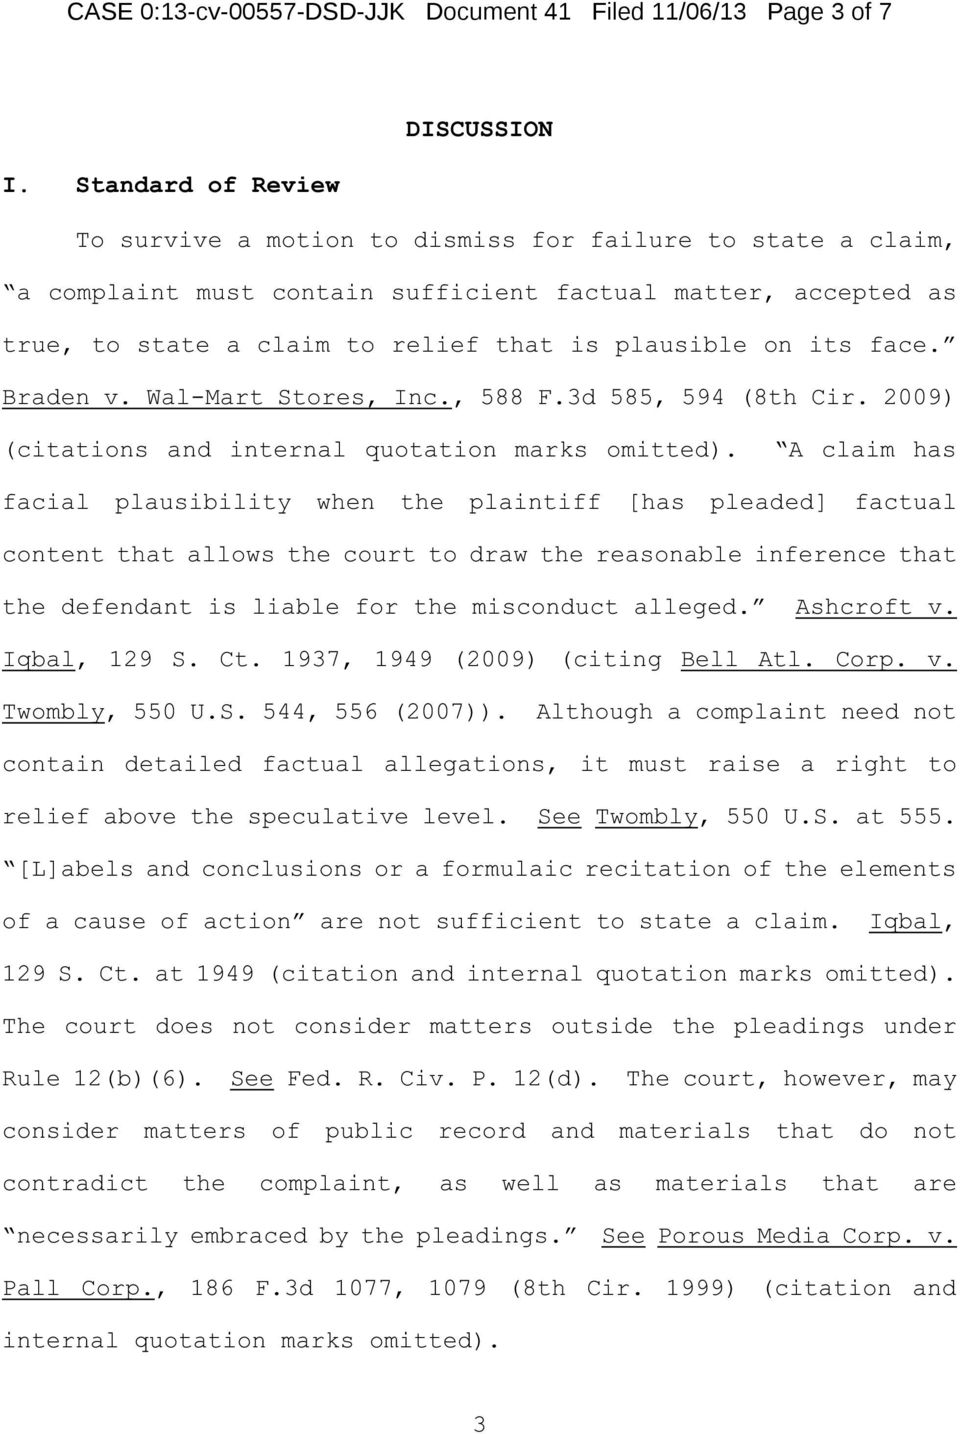 its face. Braden v. Wal-Mart Stores, Inc., 588 F.3d 585, 594 (8th Cir. 2009) (citations and internal quotation marks omitted).